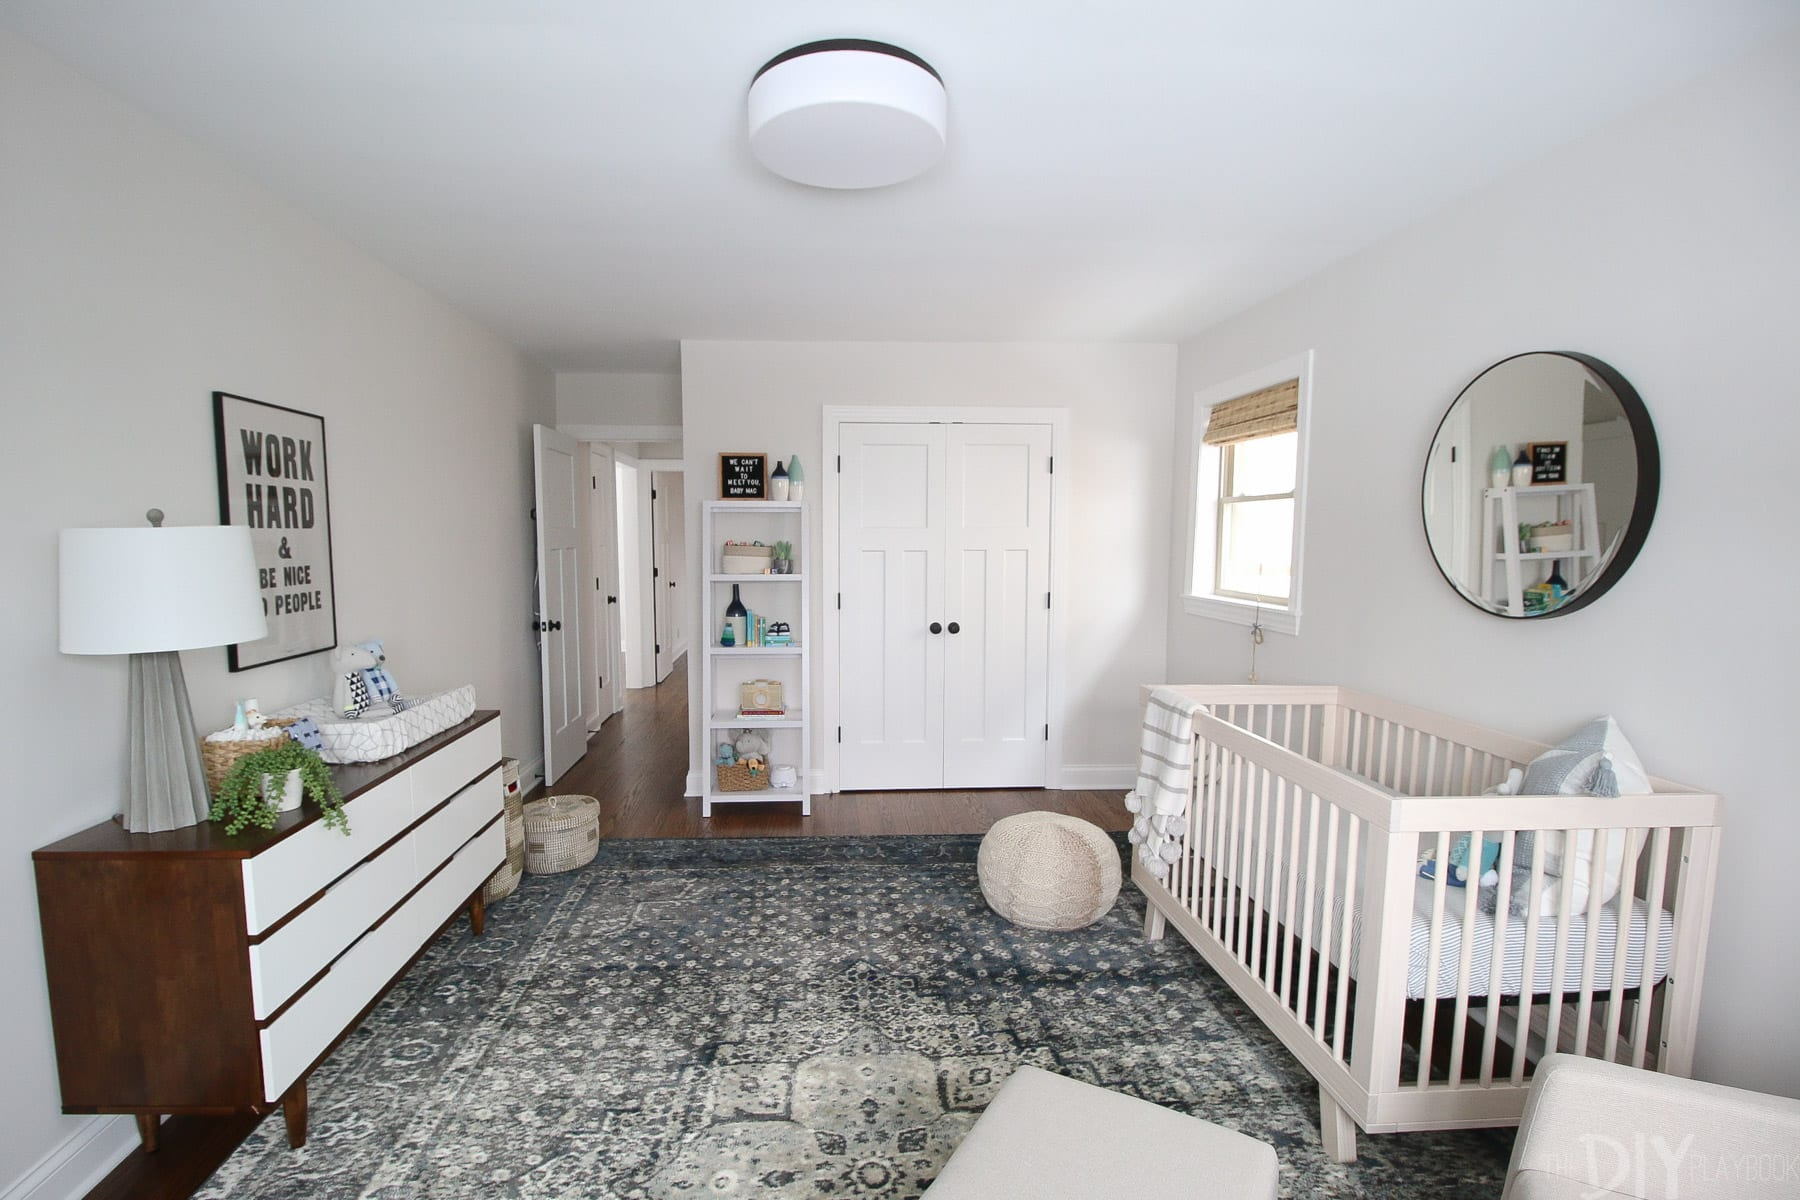 A before and after nursery reveal